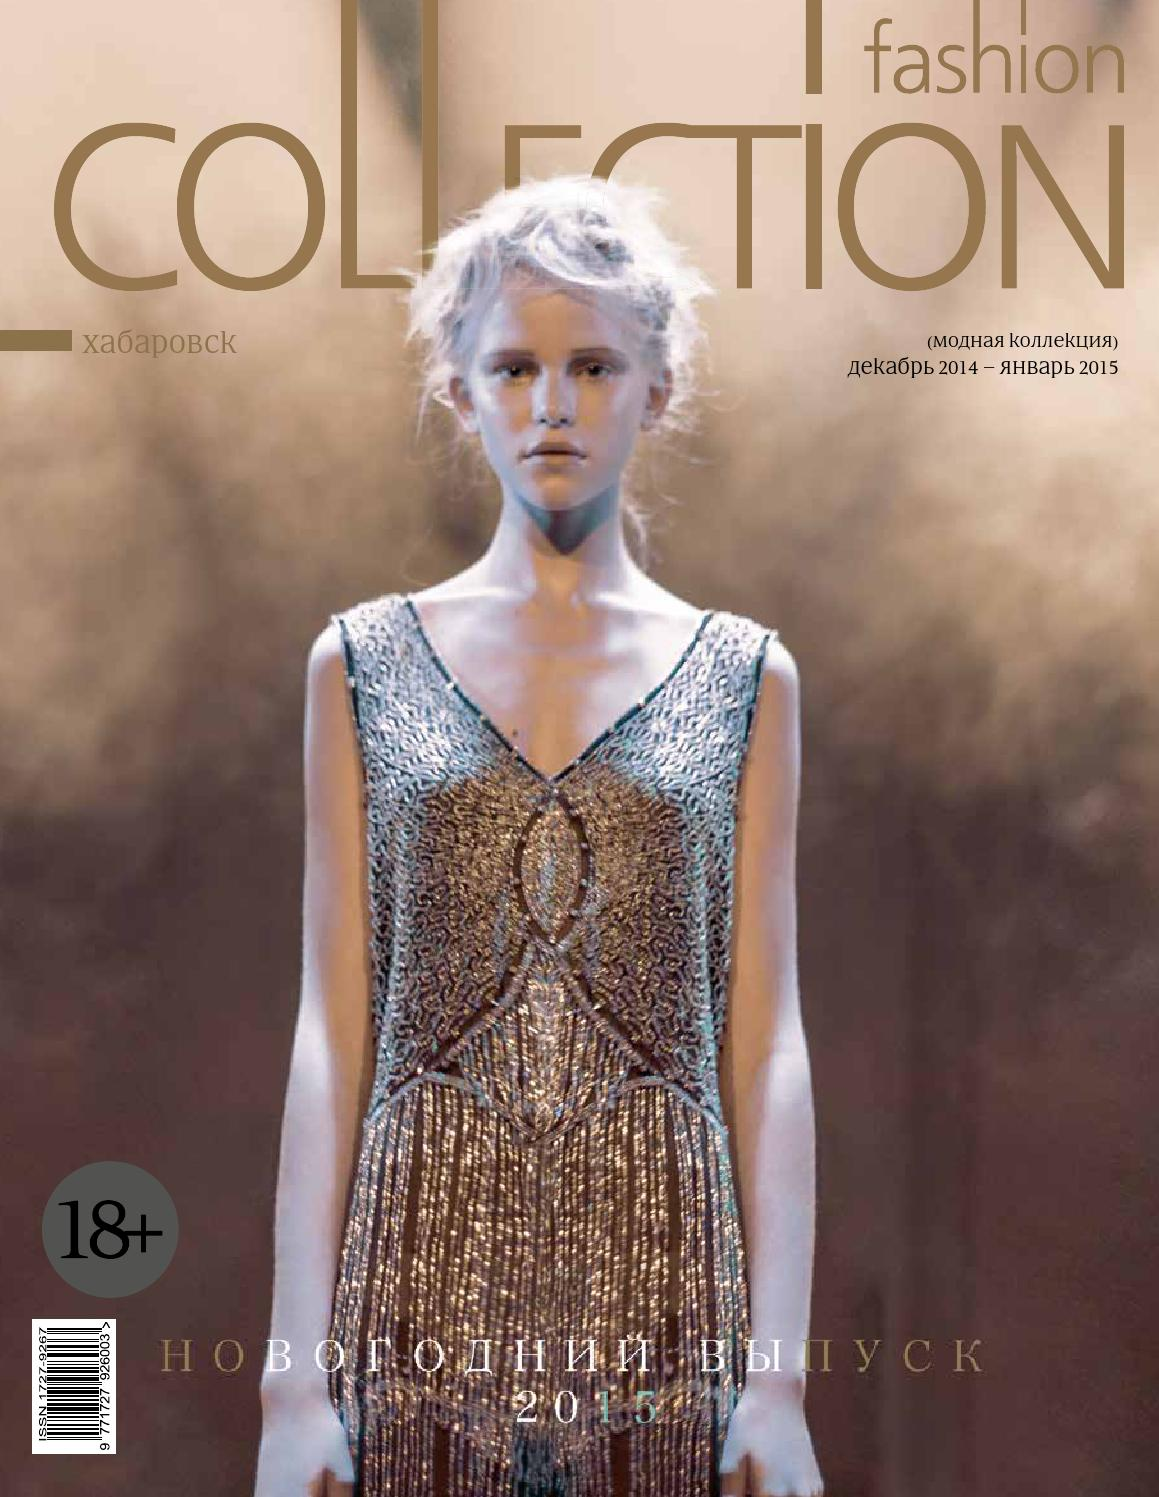 4a77b3d7bf8 Fc112 web full by Журнал о моде «Fashion Collection Хабаровск» - issuu